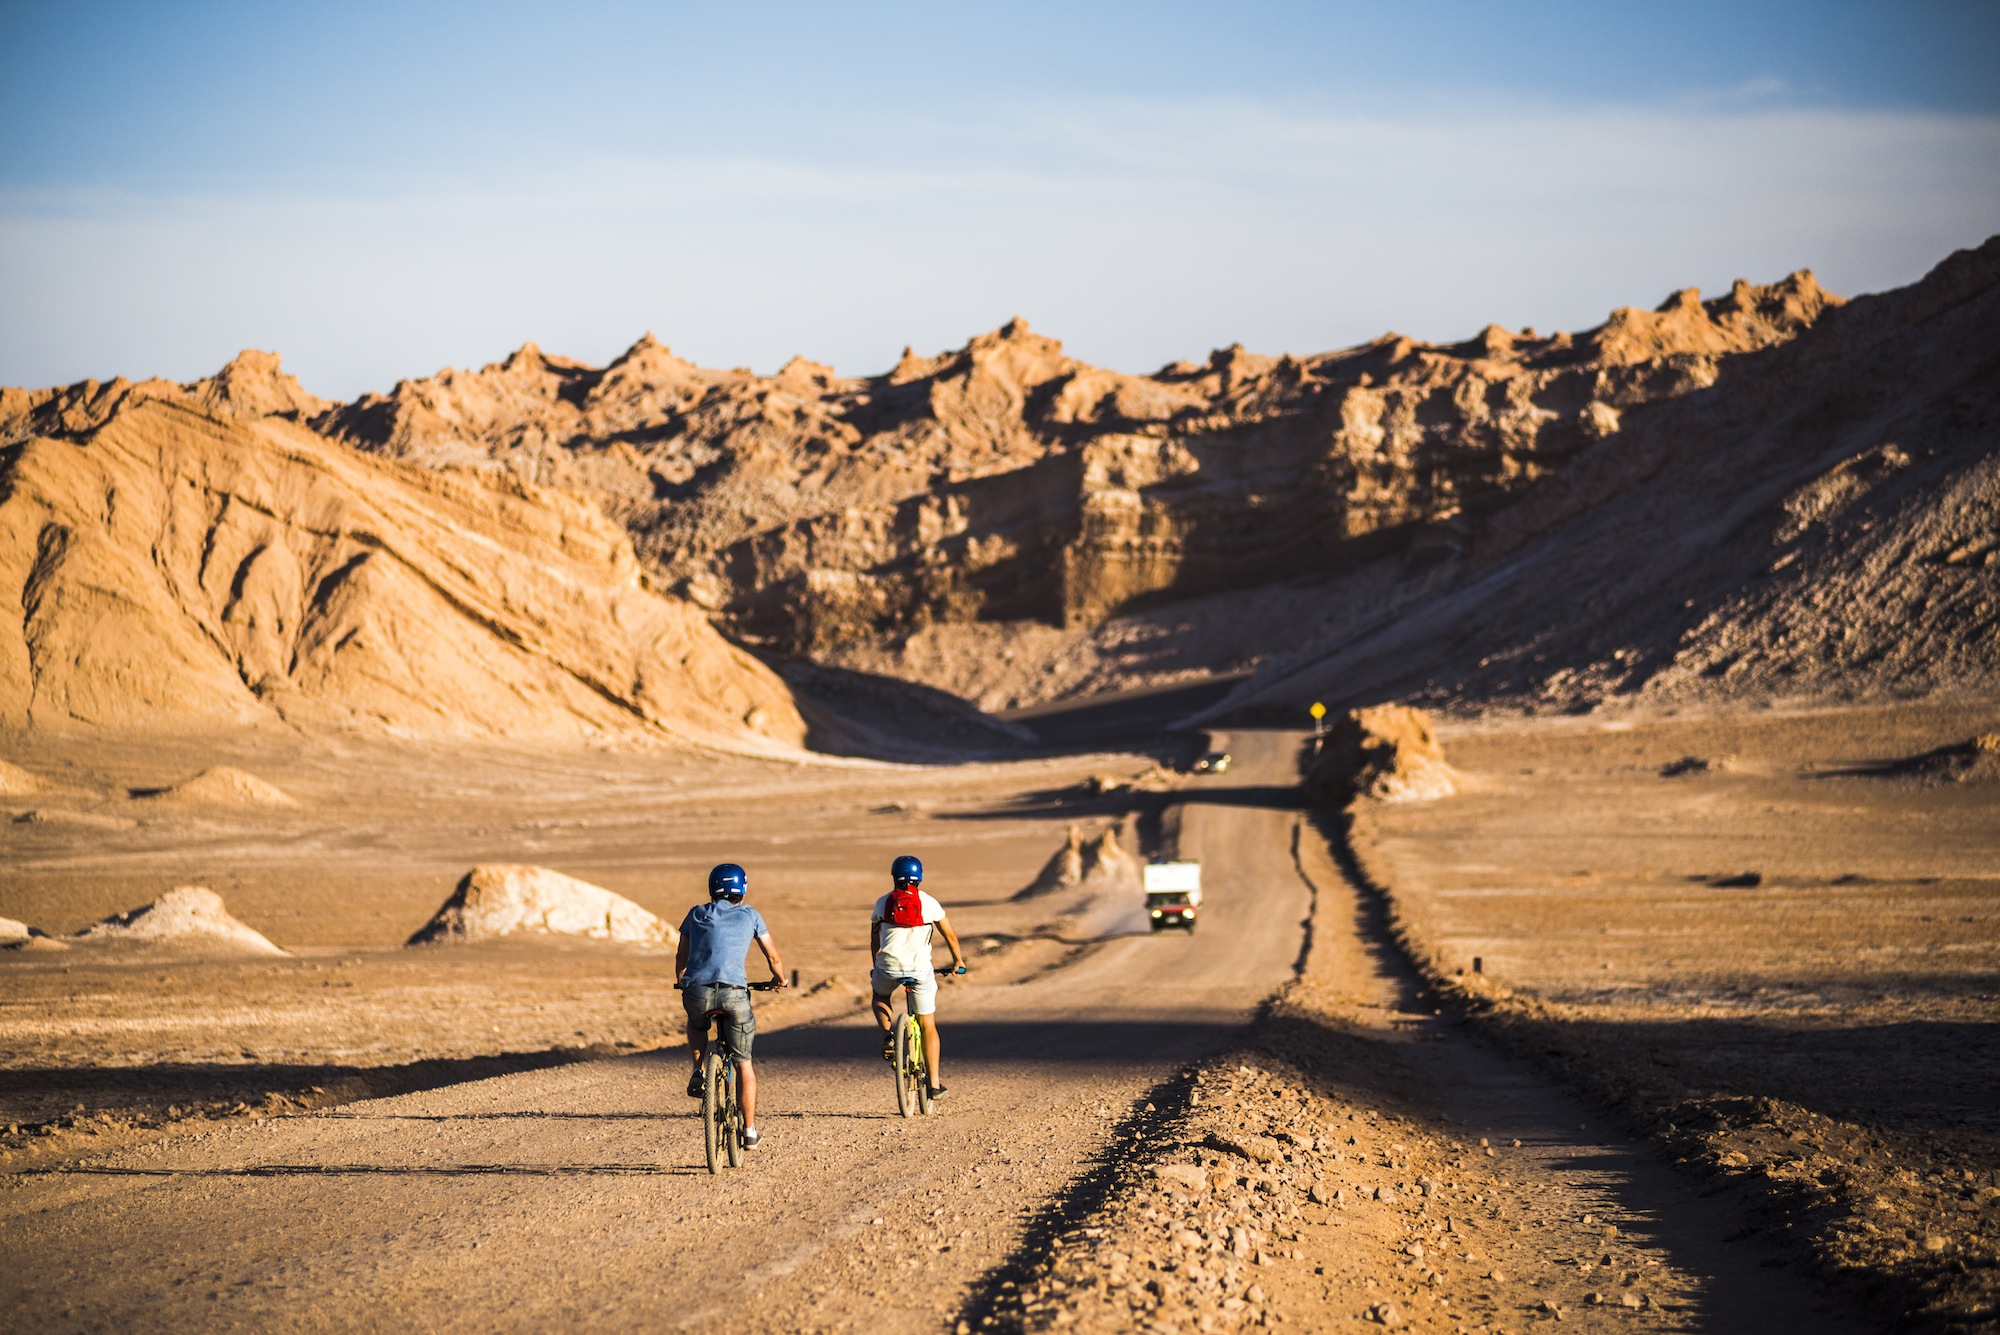 Cycling in Moon Valley (Valle de la Luna), Atacama Desert, North Chile